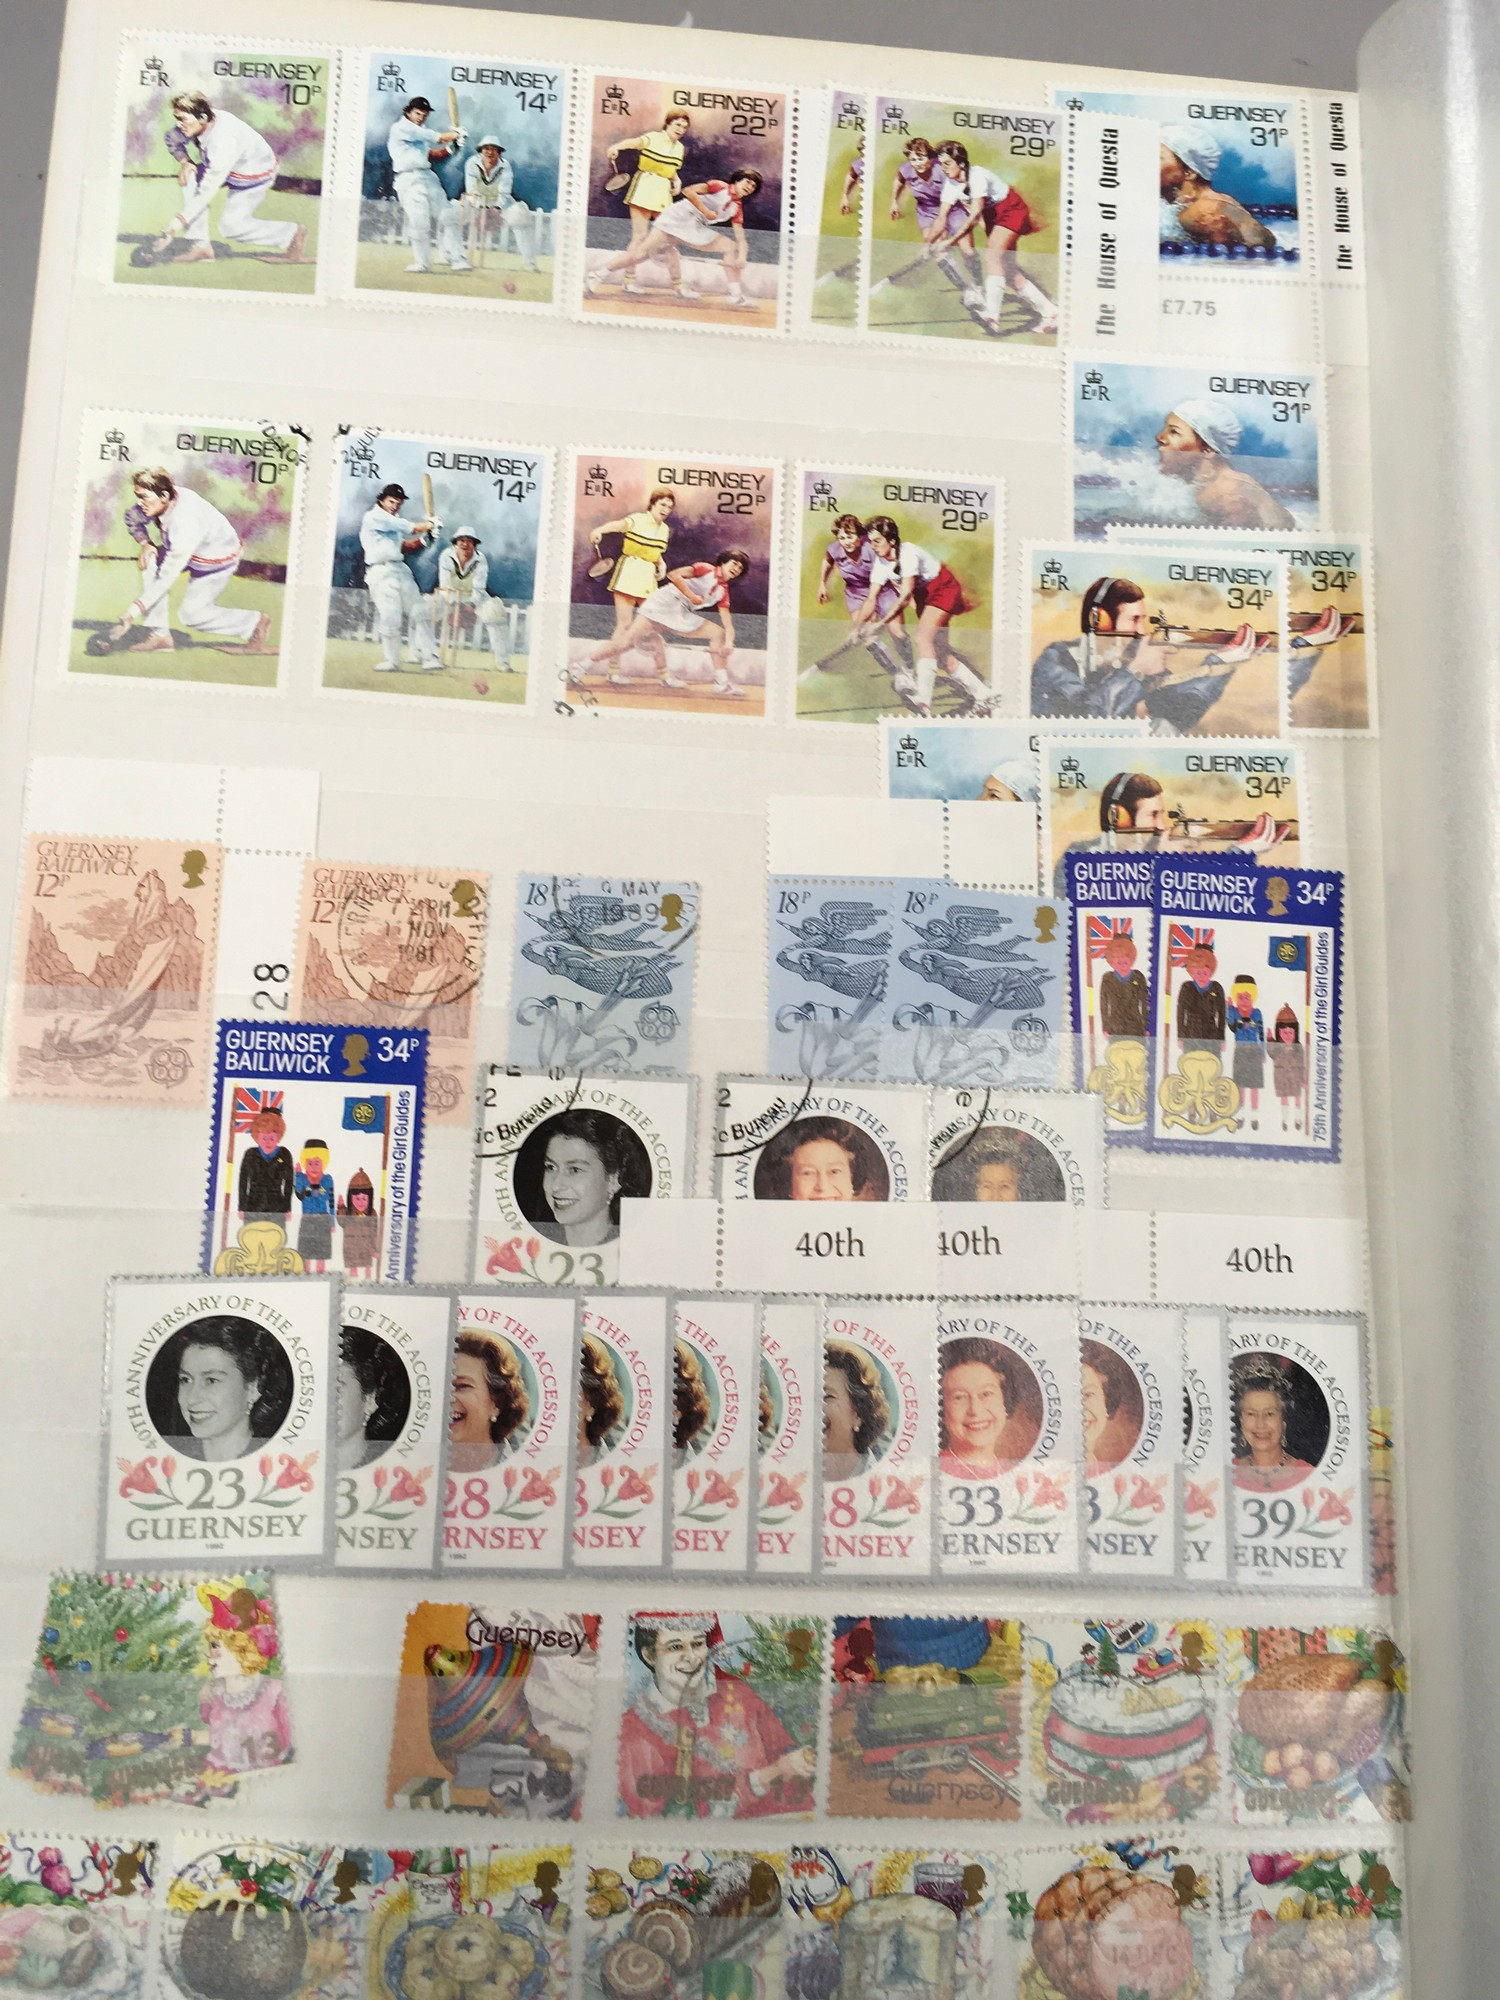 3 x Albums containing Channel Islands, Jersey Guernsey and Alderney over £800 in mint stamps. - Image 6 of 21